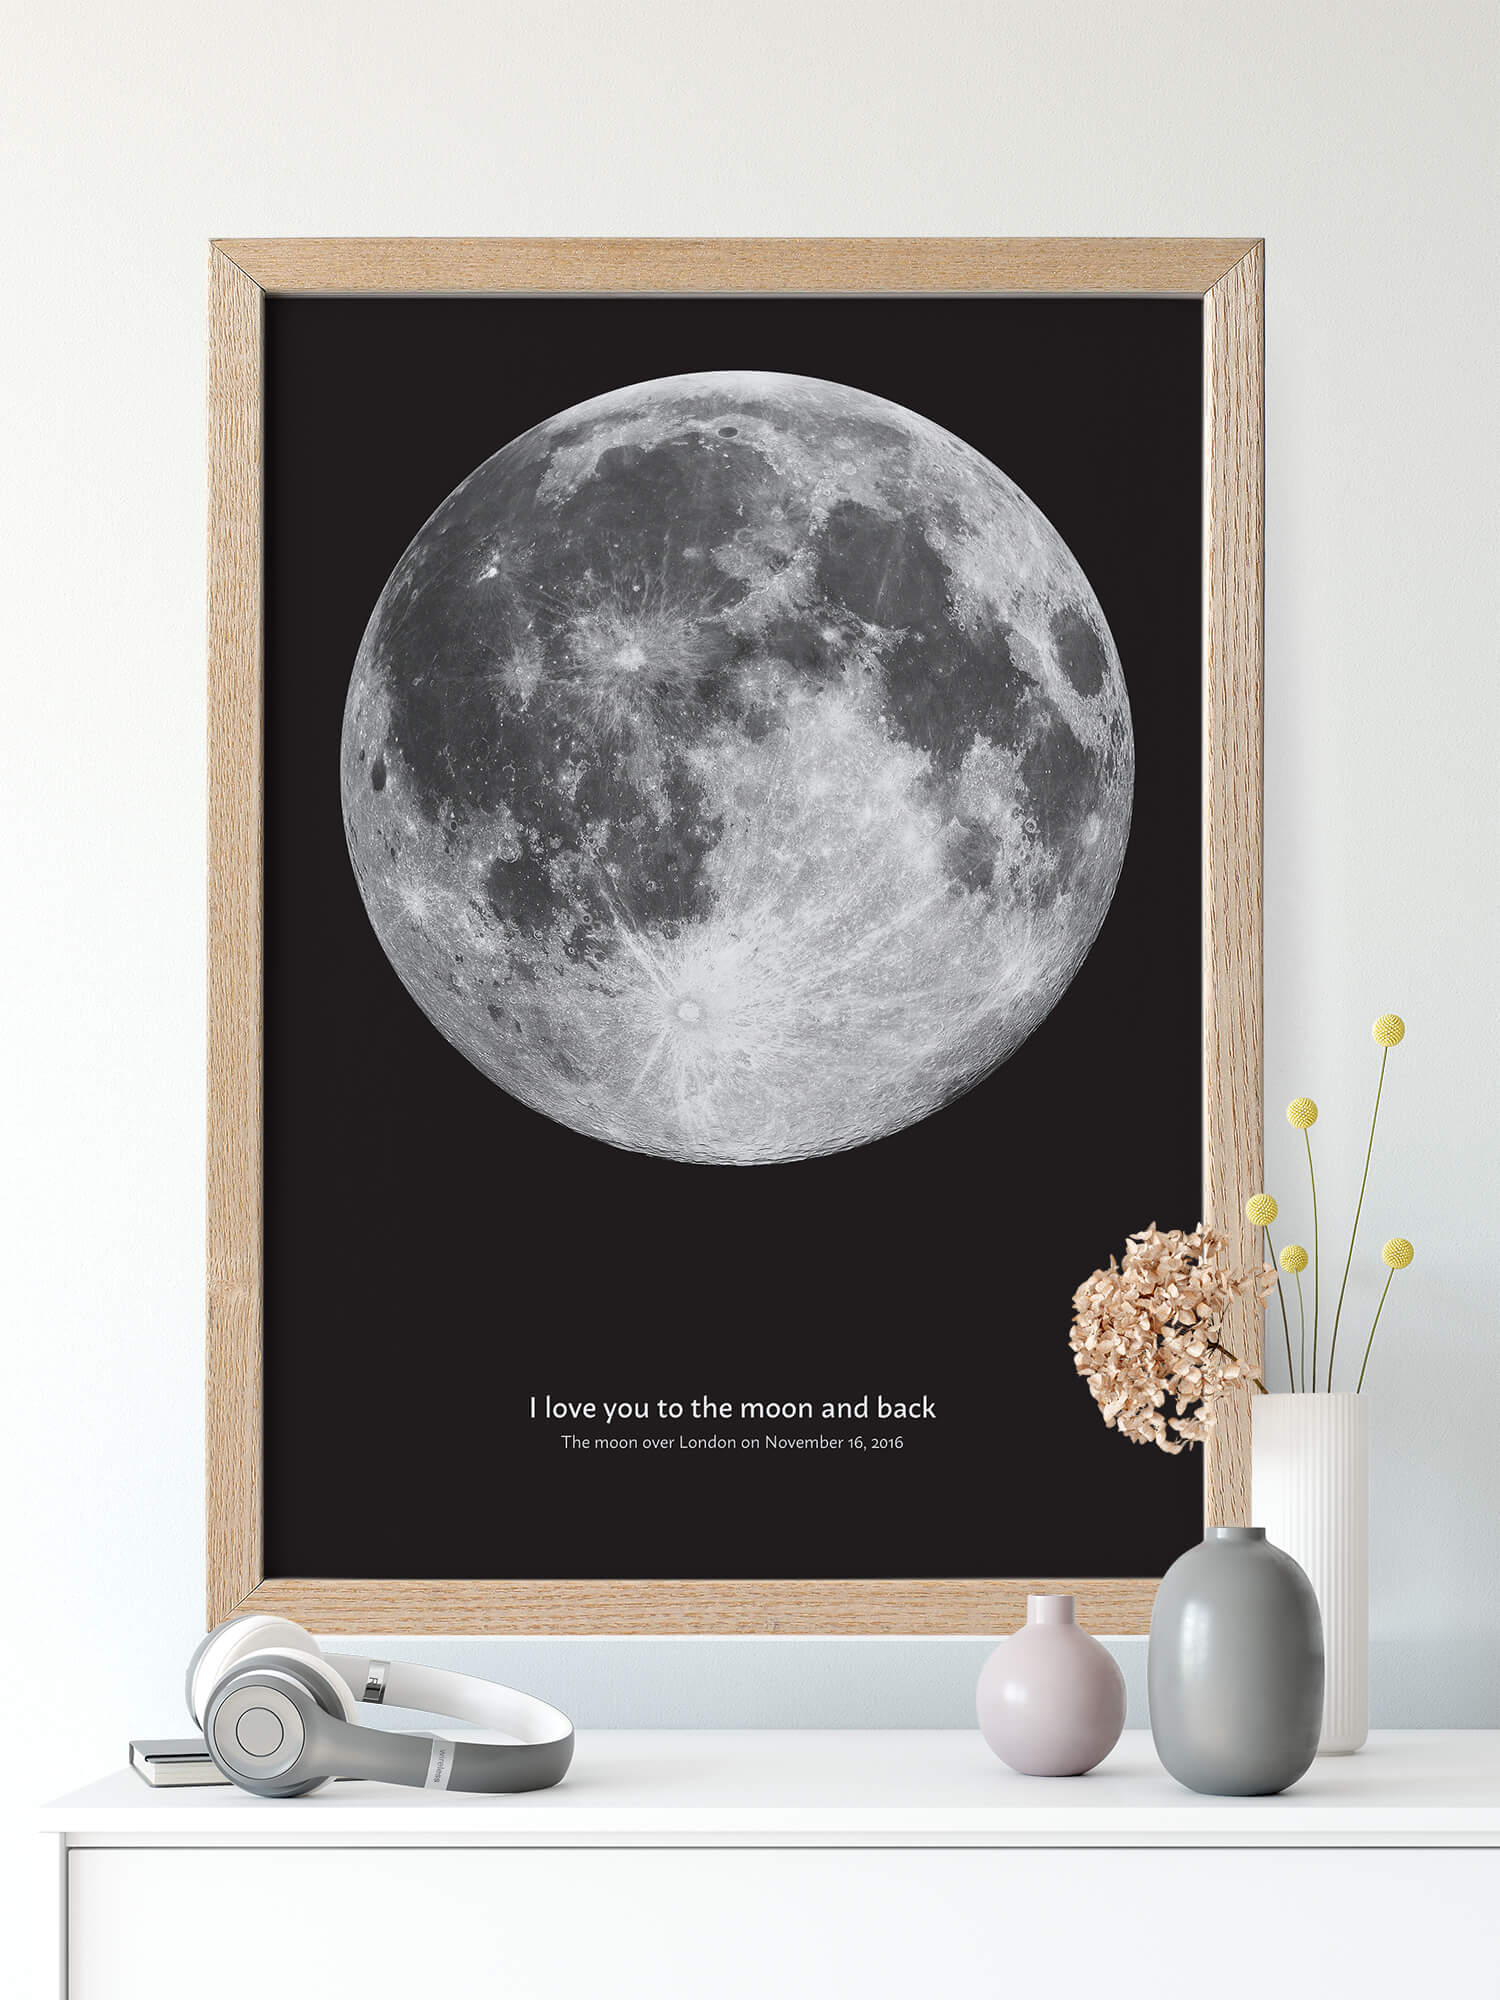 Moon phases poster with I love you to the moon and back sentence